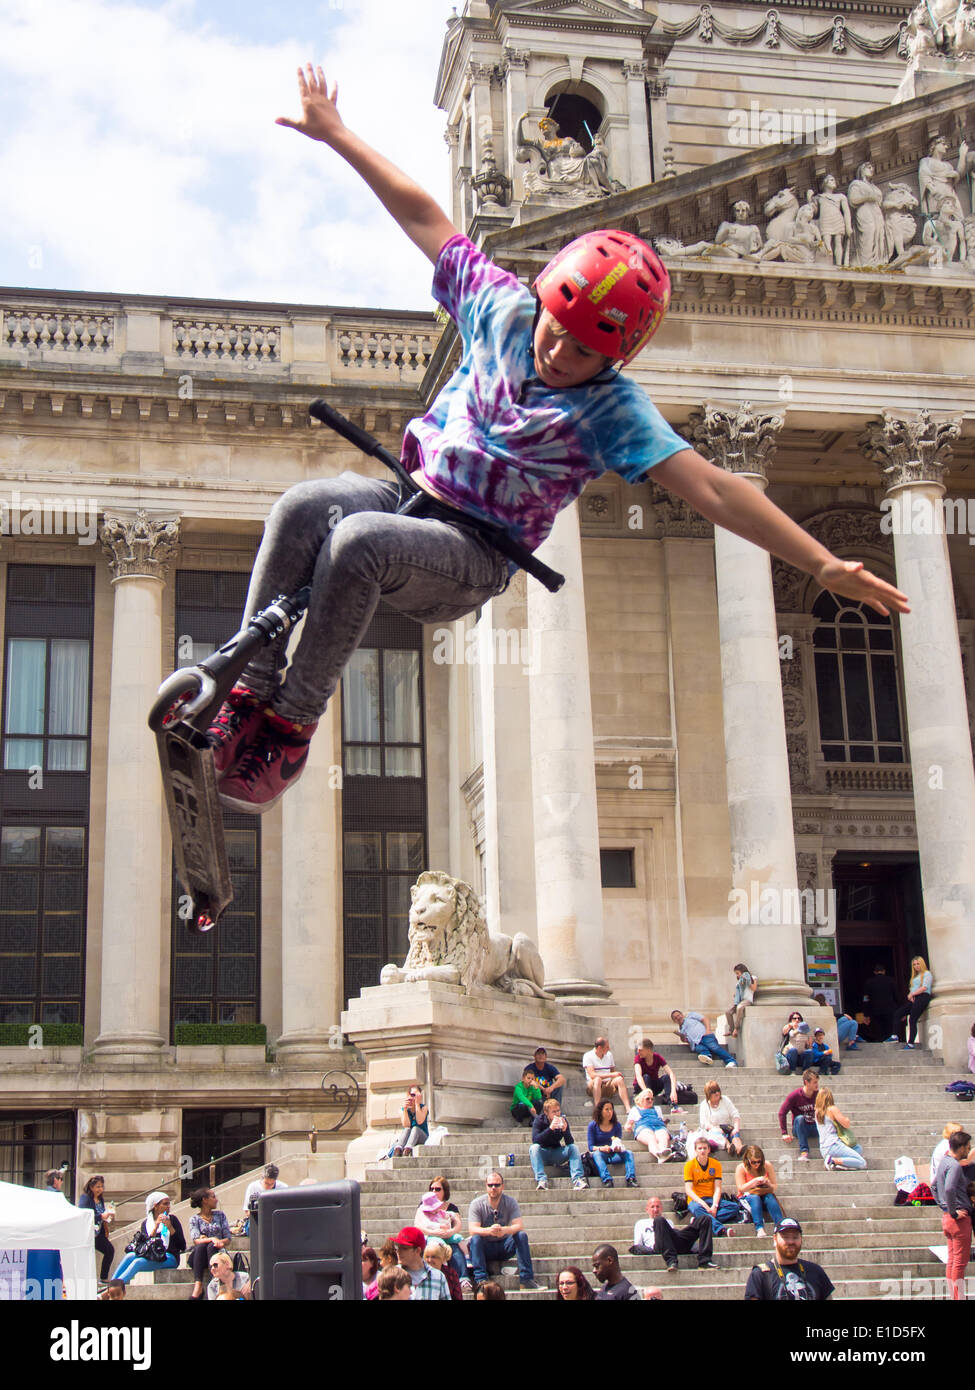 a-young-ten-year-old-scooter-rider-performs-an-aerial-stunt-in-front-E1D5FX.jpg